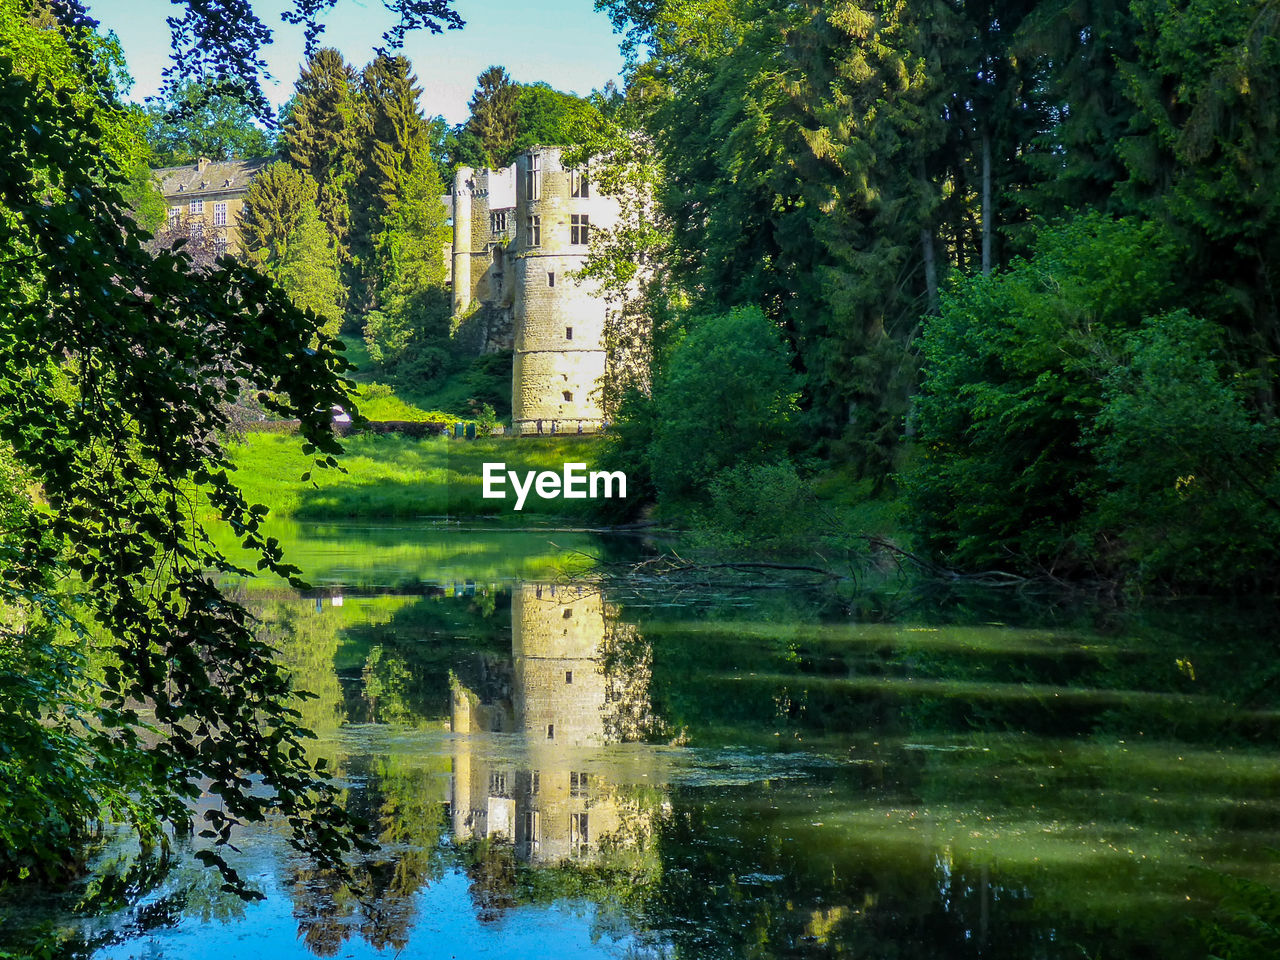 water, plant, tree, nature, green color, reflection, built structure, building exterior, lake, architecture, building, tranquility, day, no people, beauty in nature, scenics - nature, outdoors, growth, tranquil scene